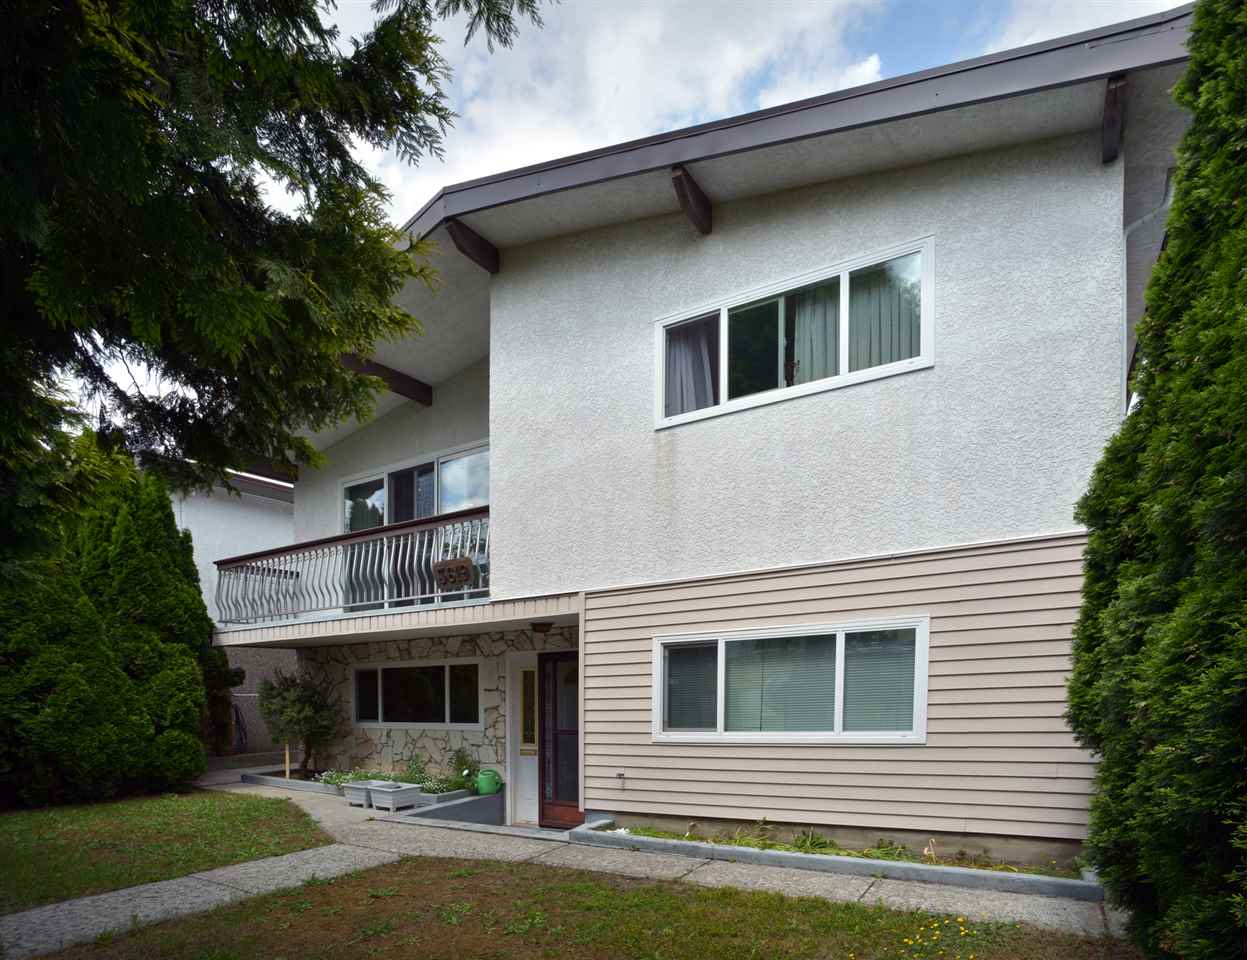 Main Photo: 3619 MOSCROP Street in Vancouver: Collingwood VE House for sale (Vancouver East)  : MLS® # R2073239